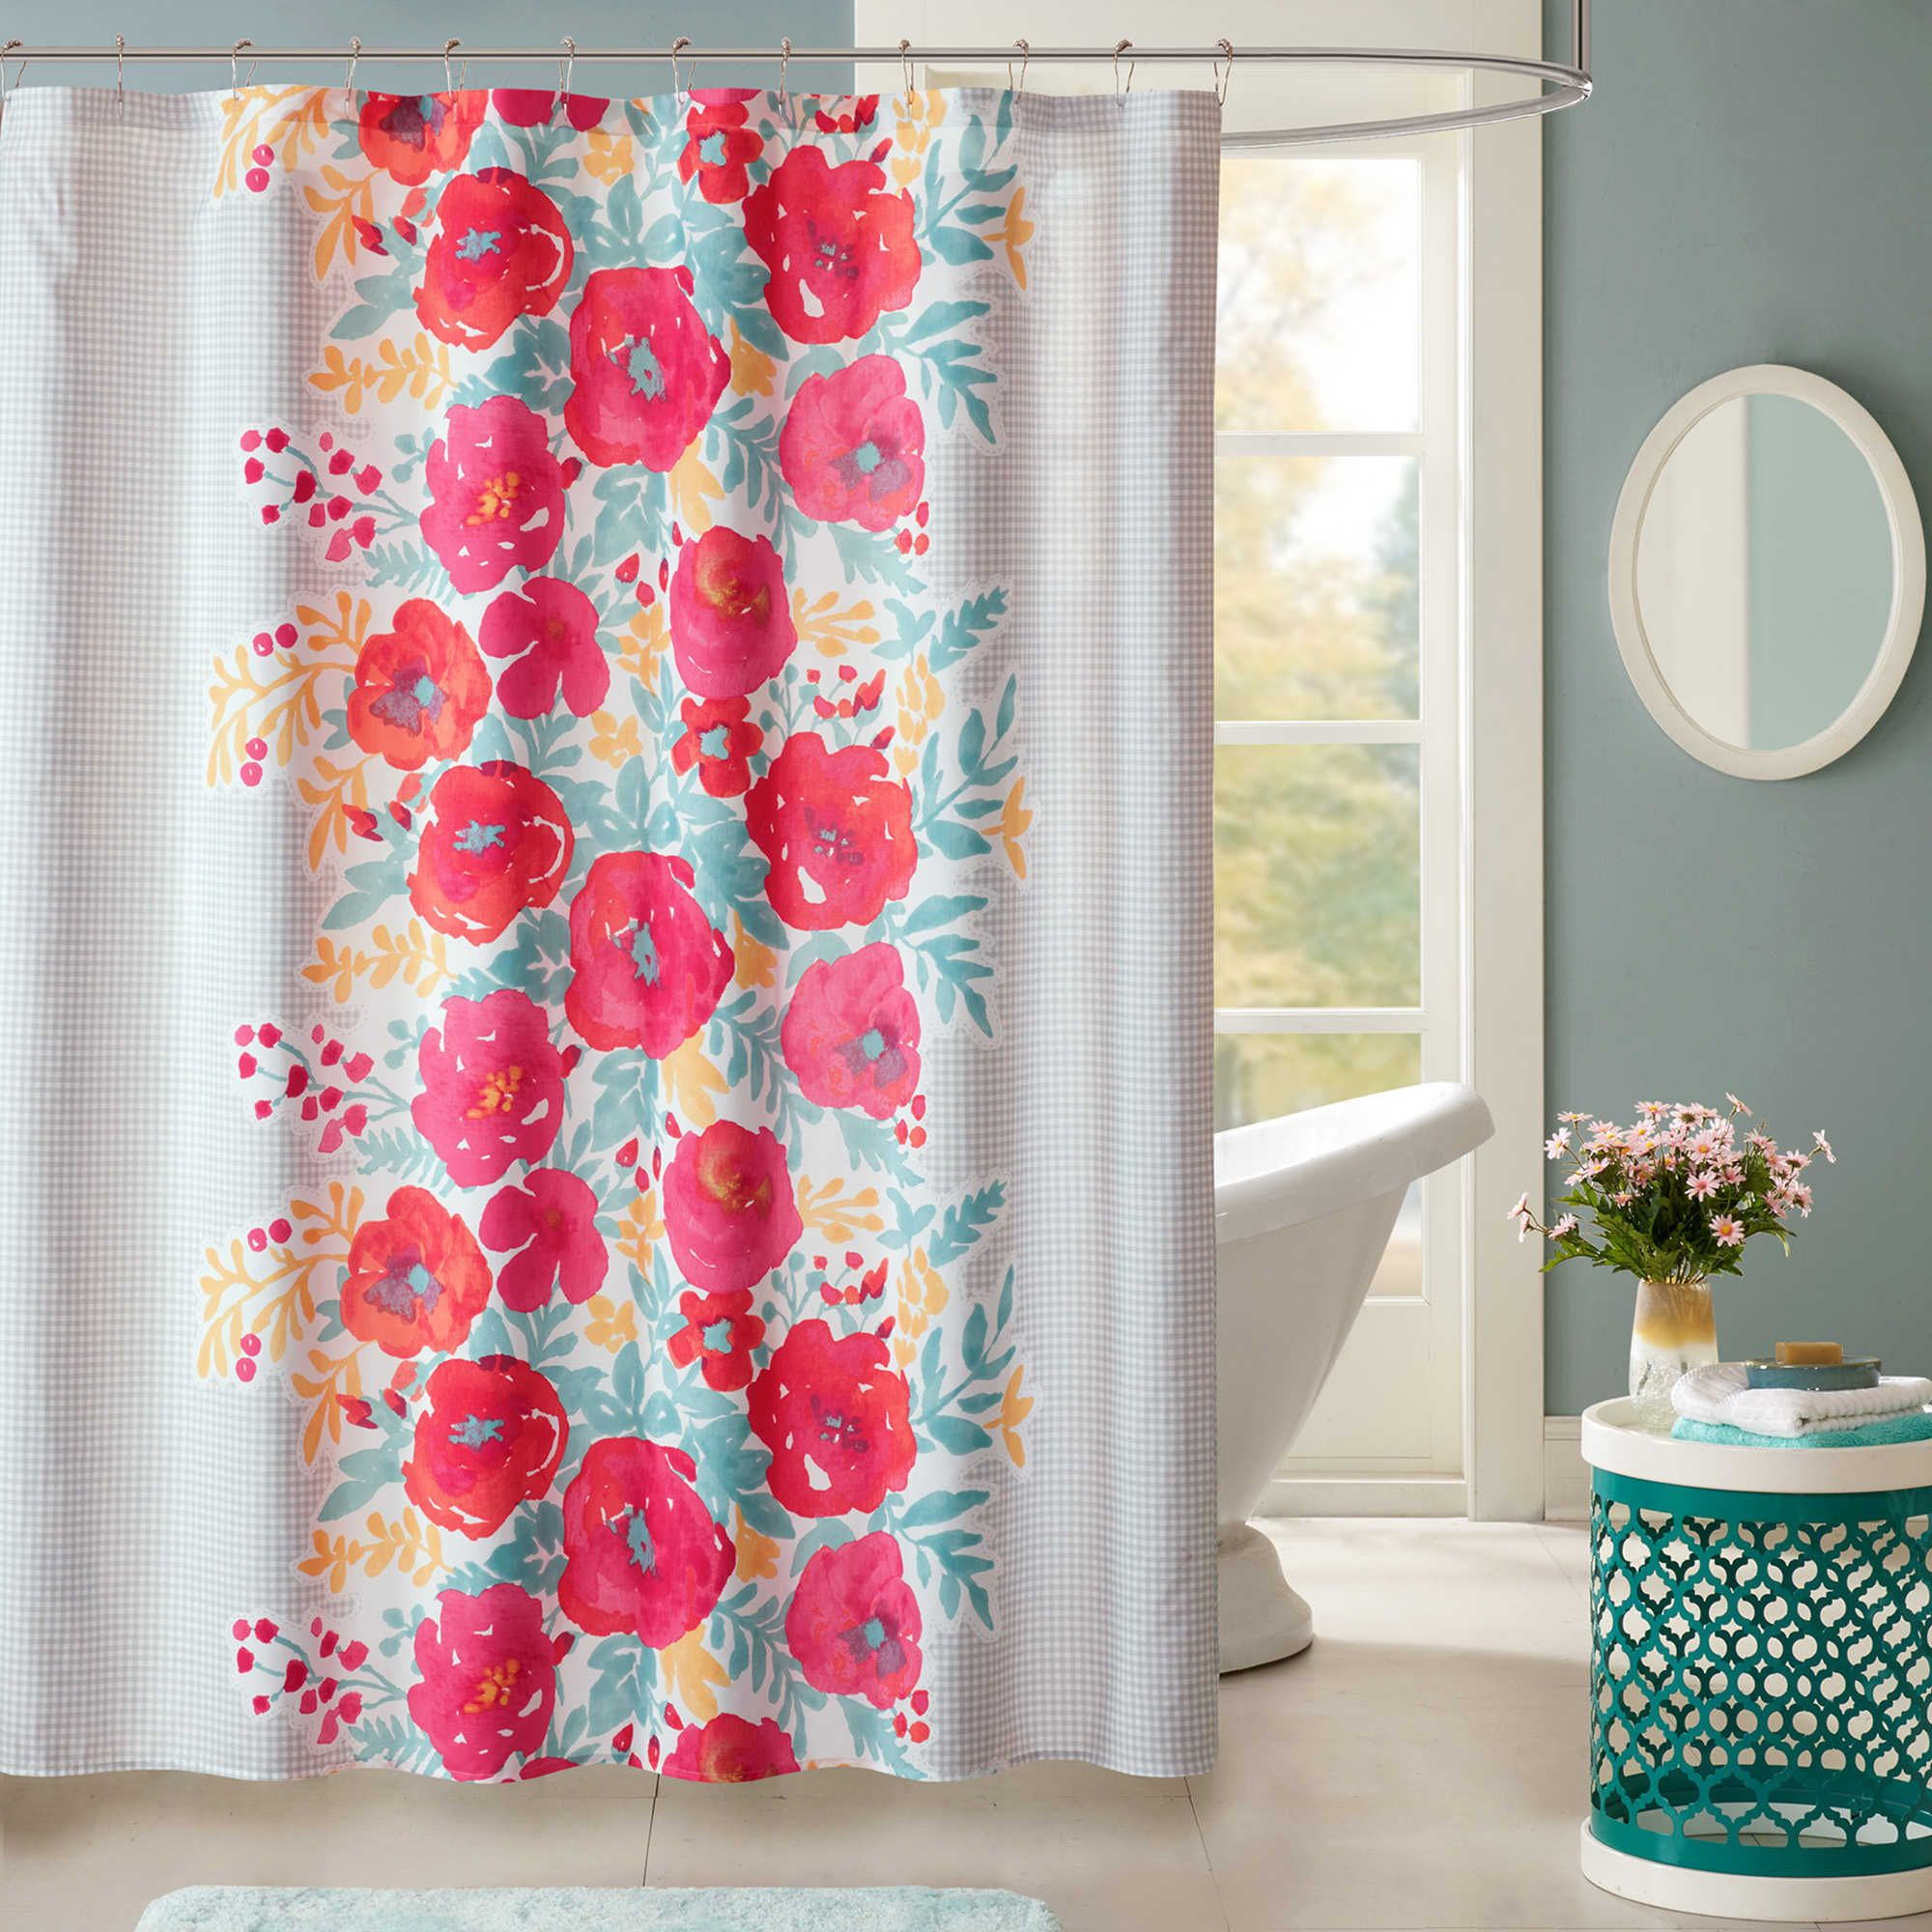 Intelligent Design Elodie Shower Curtain In Coral